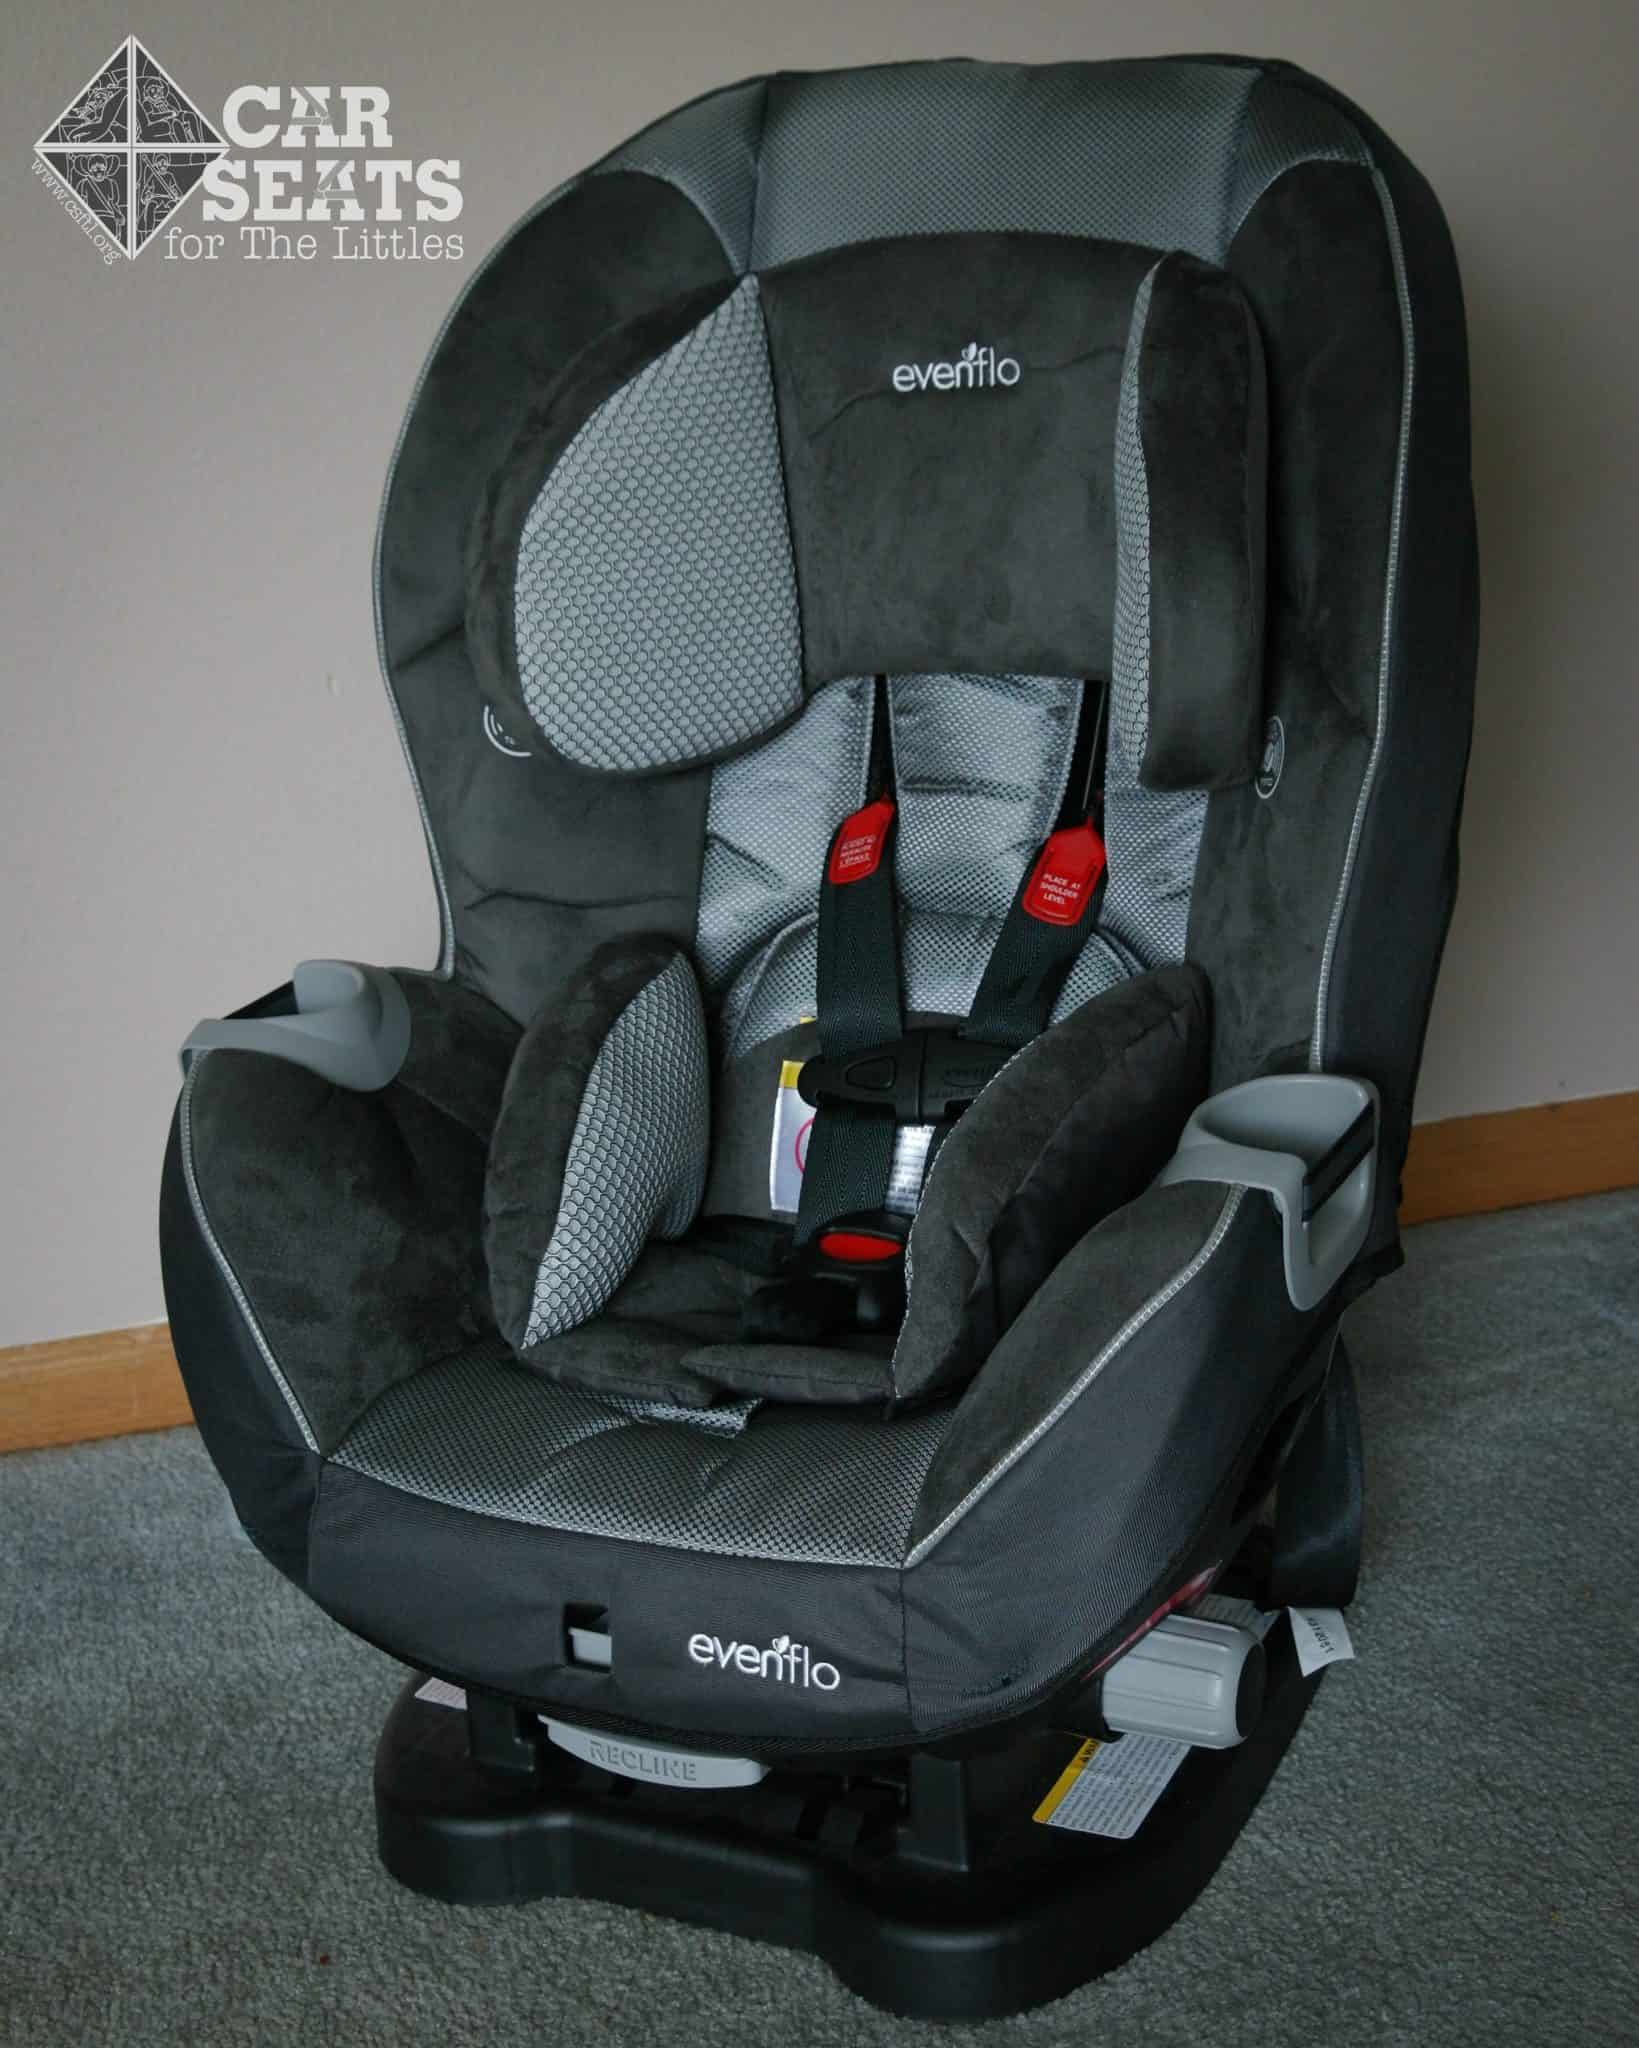 Car Seat Chair Evenflo Triumph Review Car Seats For The Littles